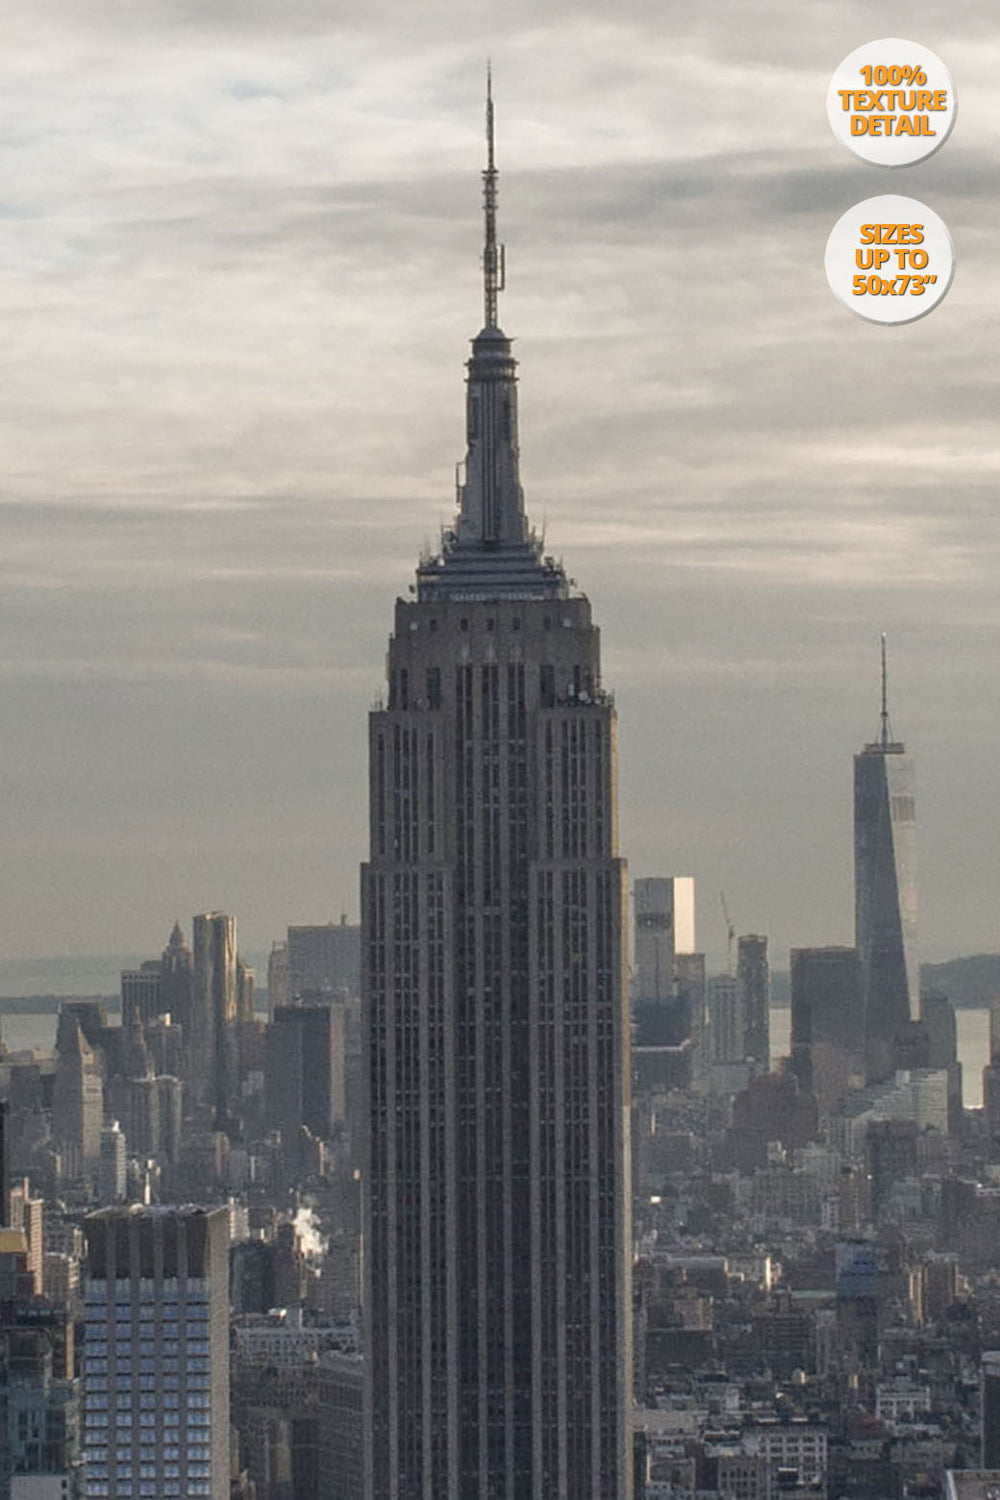 The Empire State Building before sunset, Midtown Manhattan, US. | Giant Print Detail at 100% magnification.